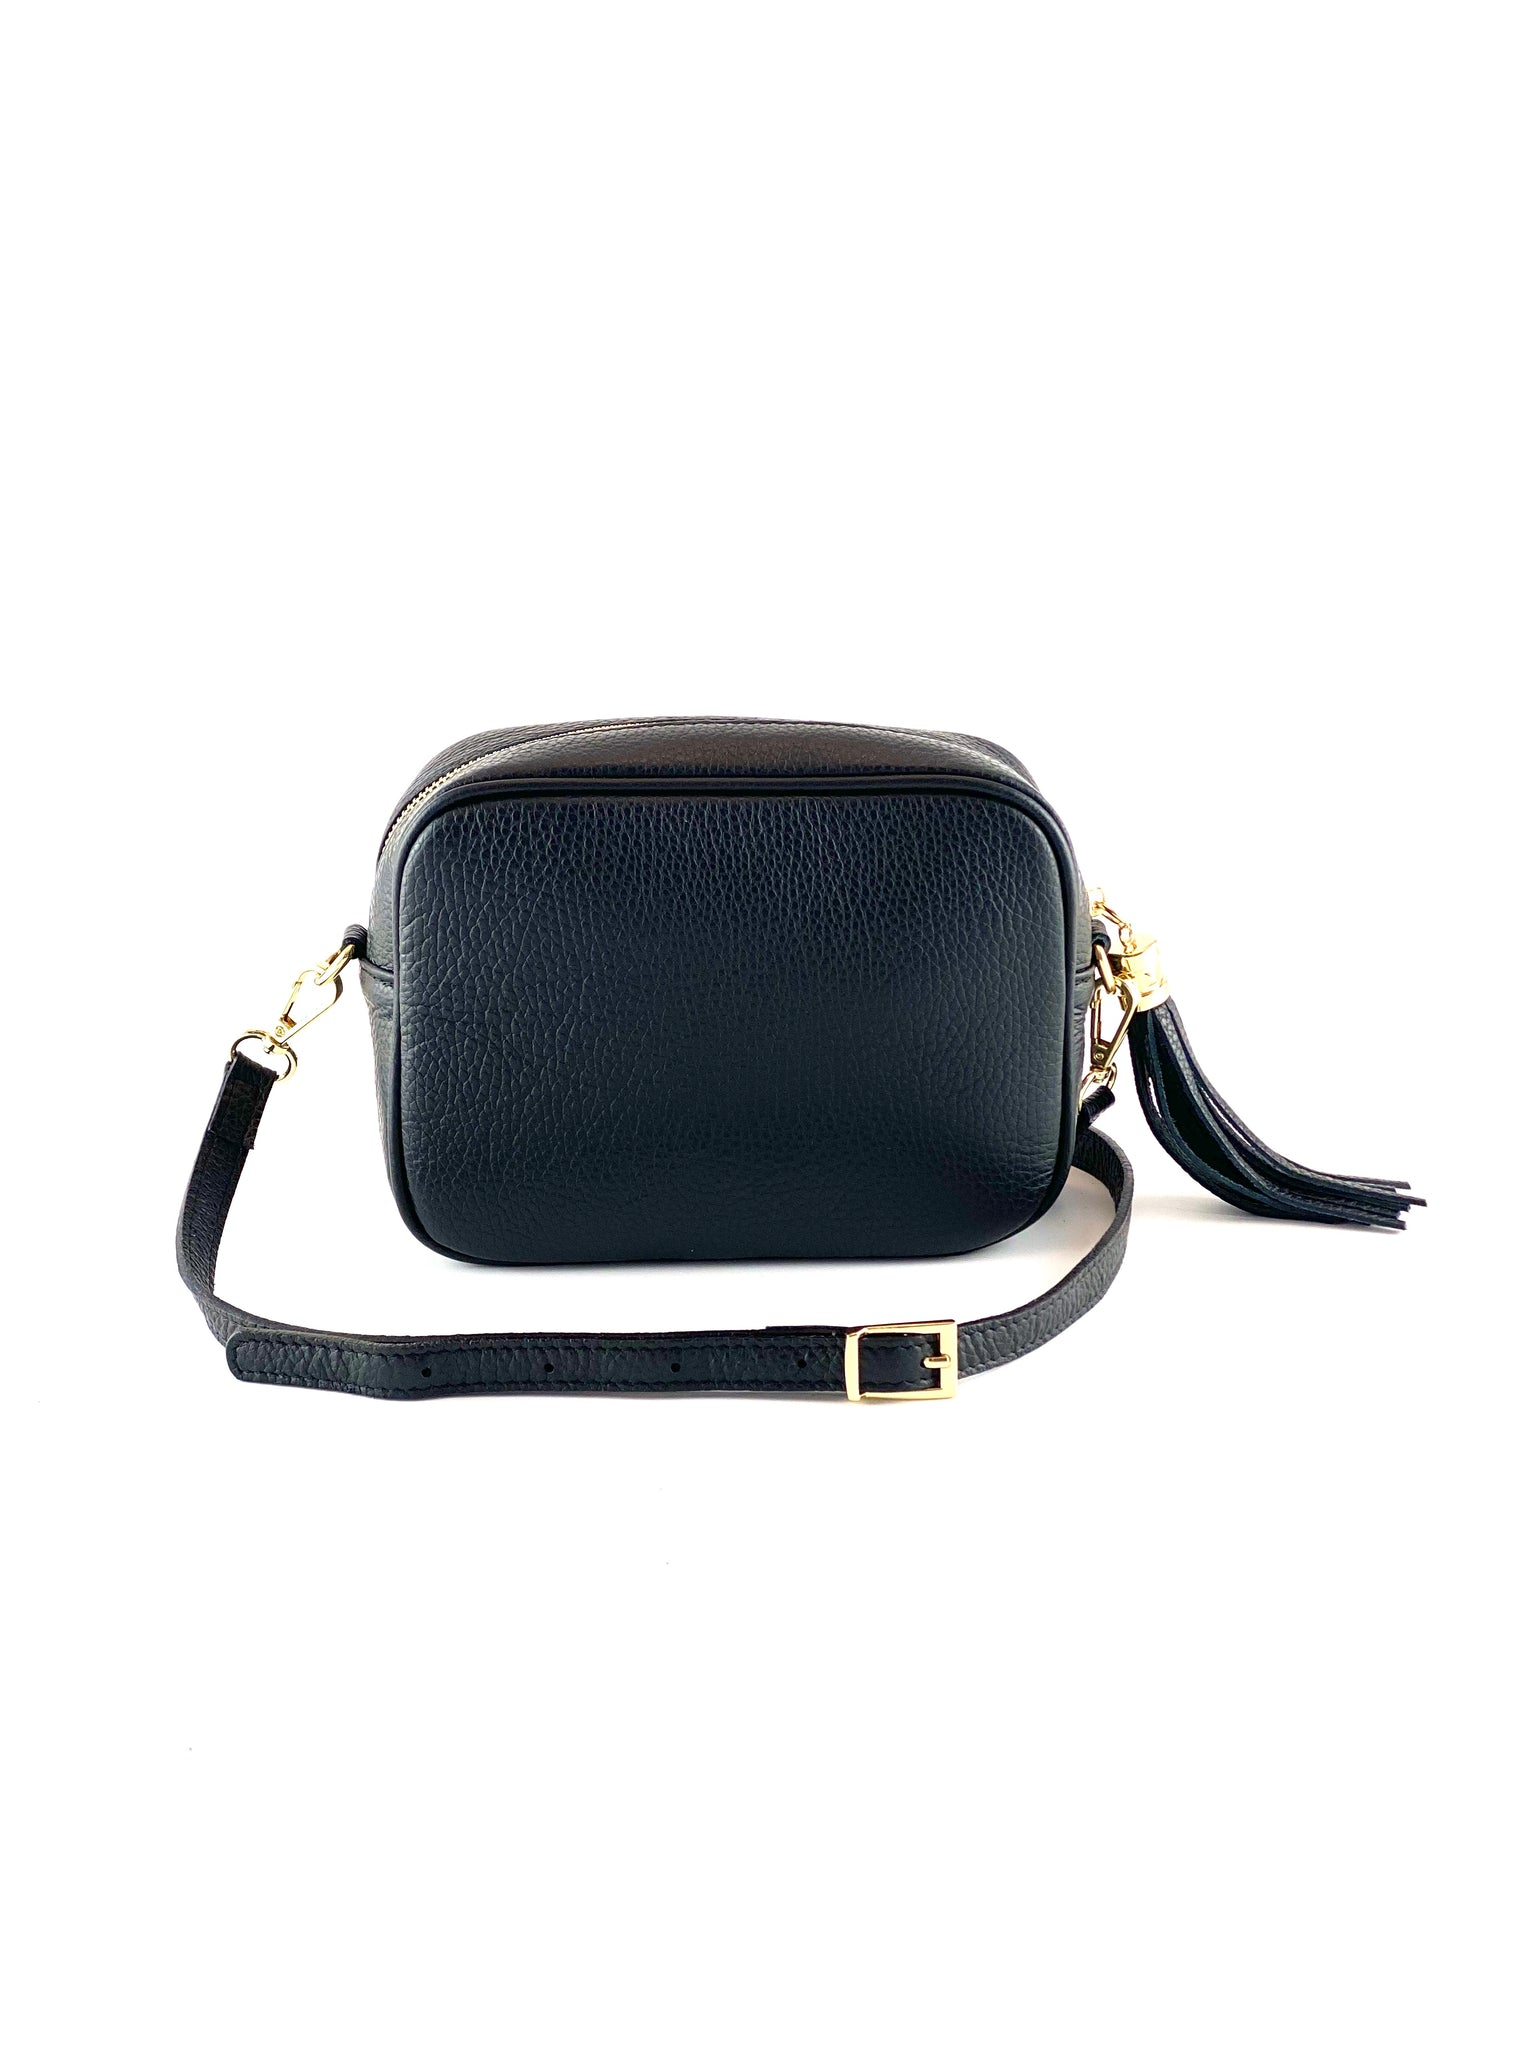 An image of a small black leather messenger bag with a leather tassel on the zip which opens across the top of the bag.